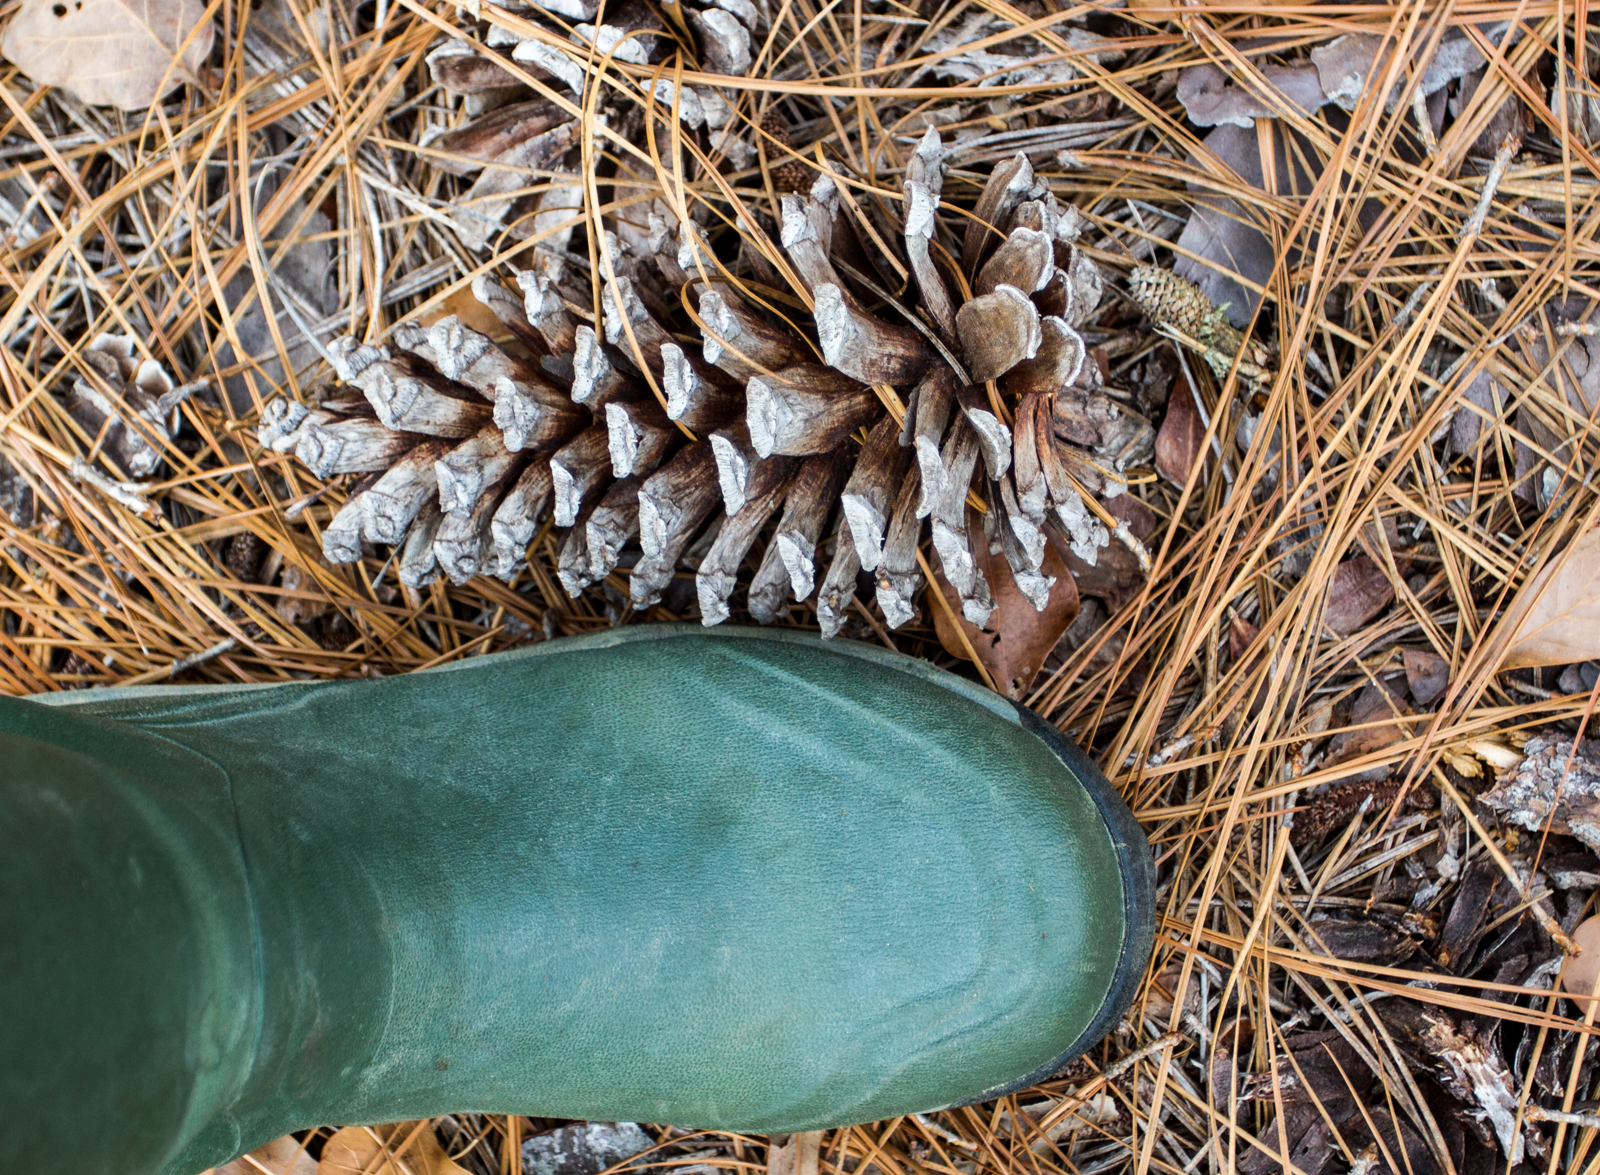 Large pine cone next to rubber boot